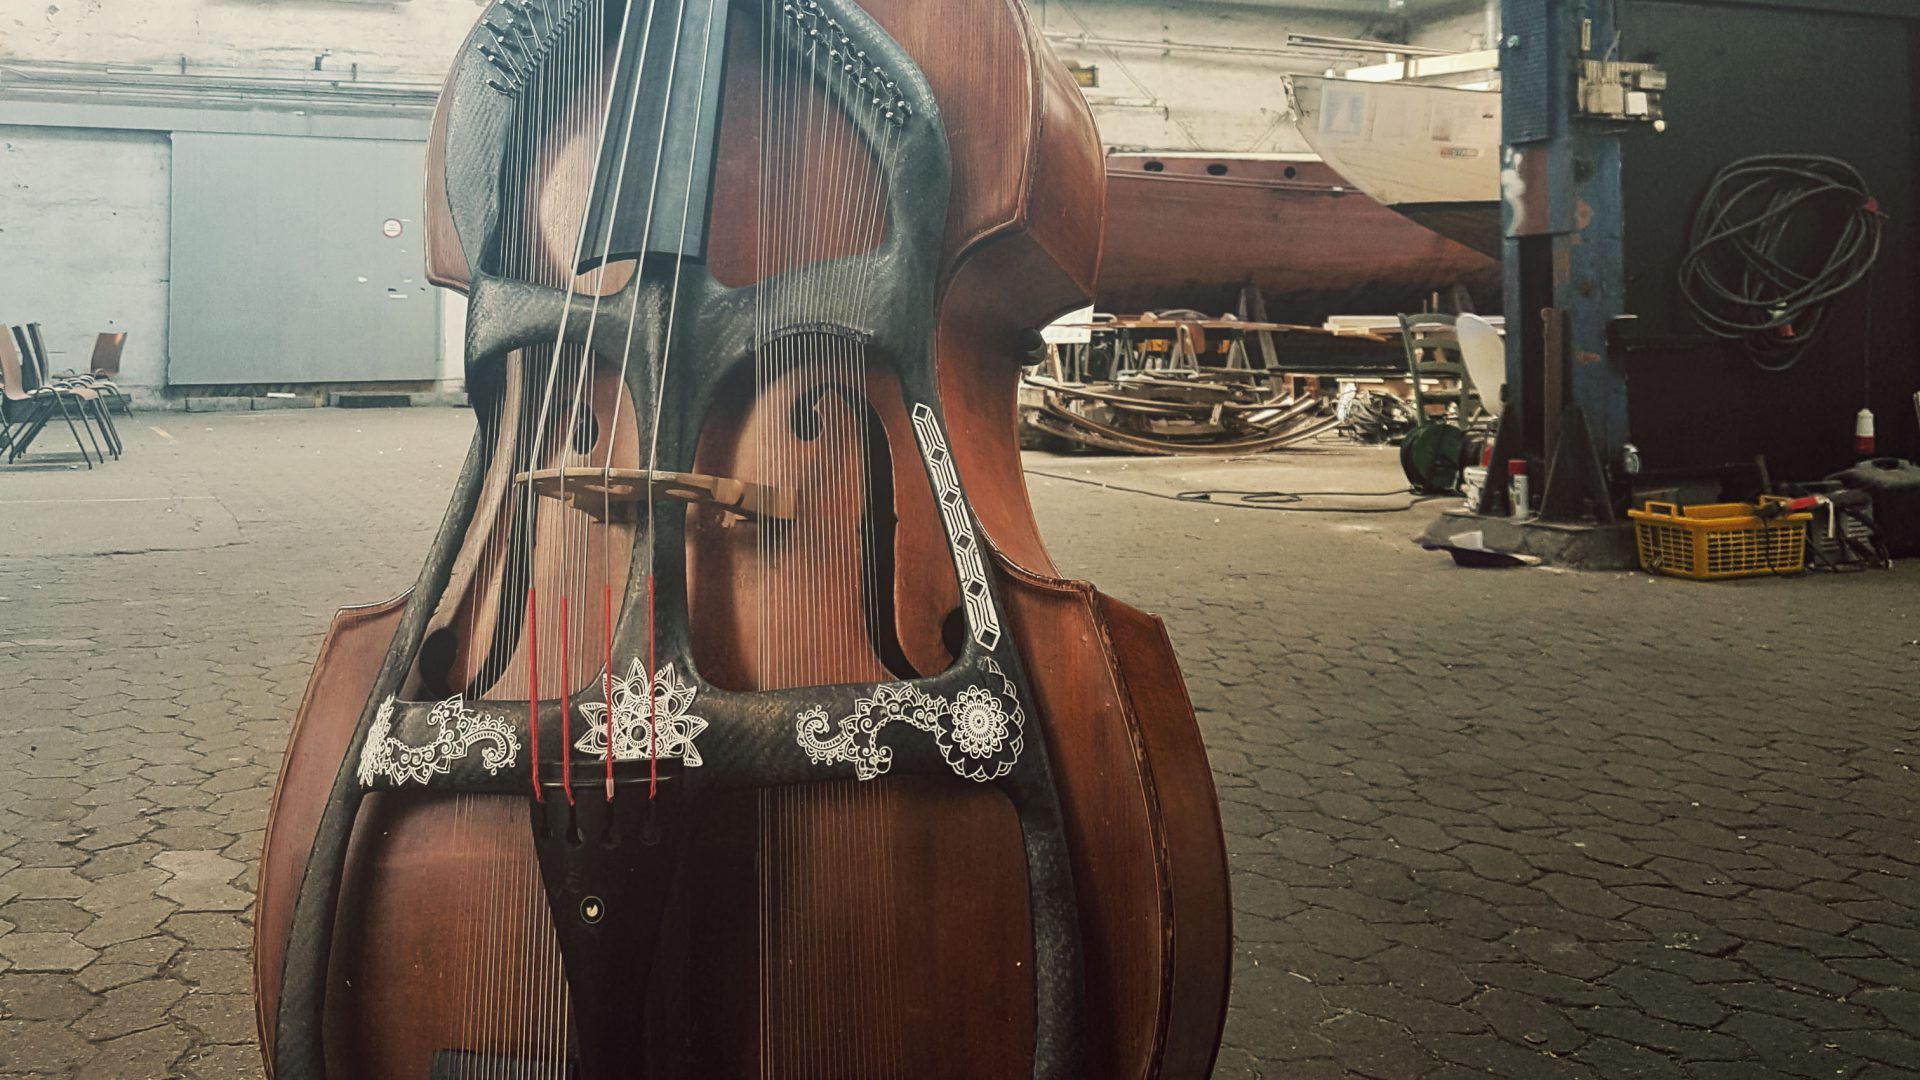 Permalink to: The Swedish Harp Bass